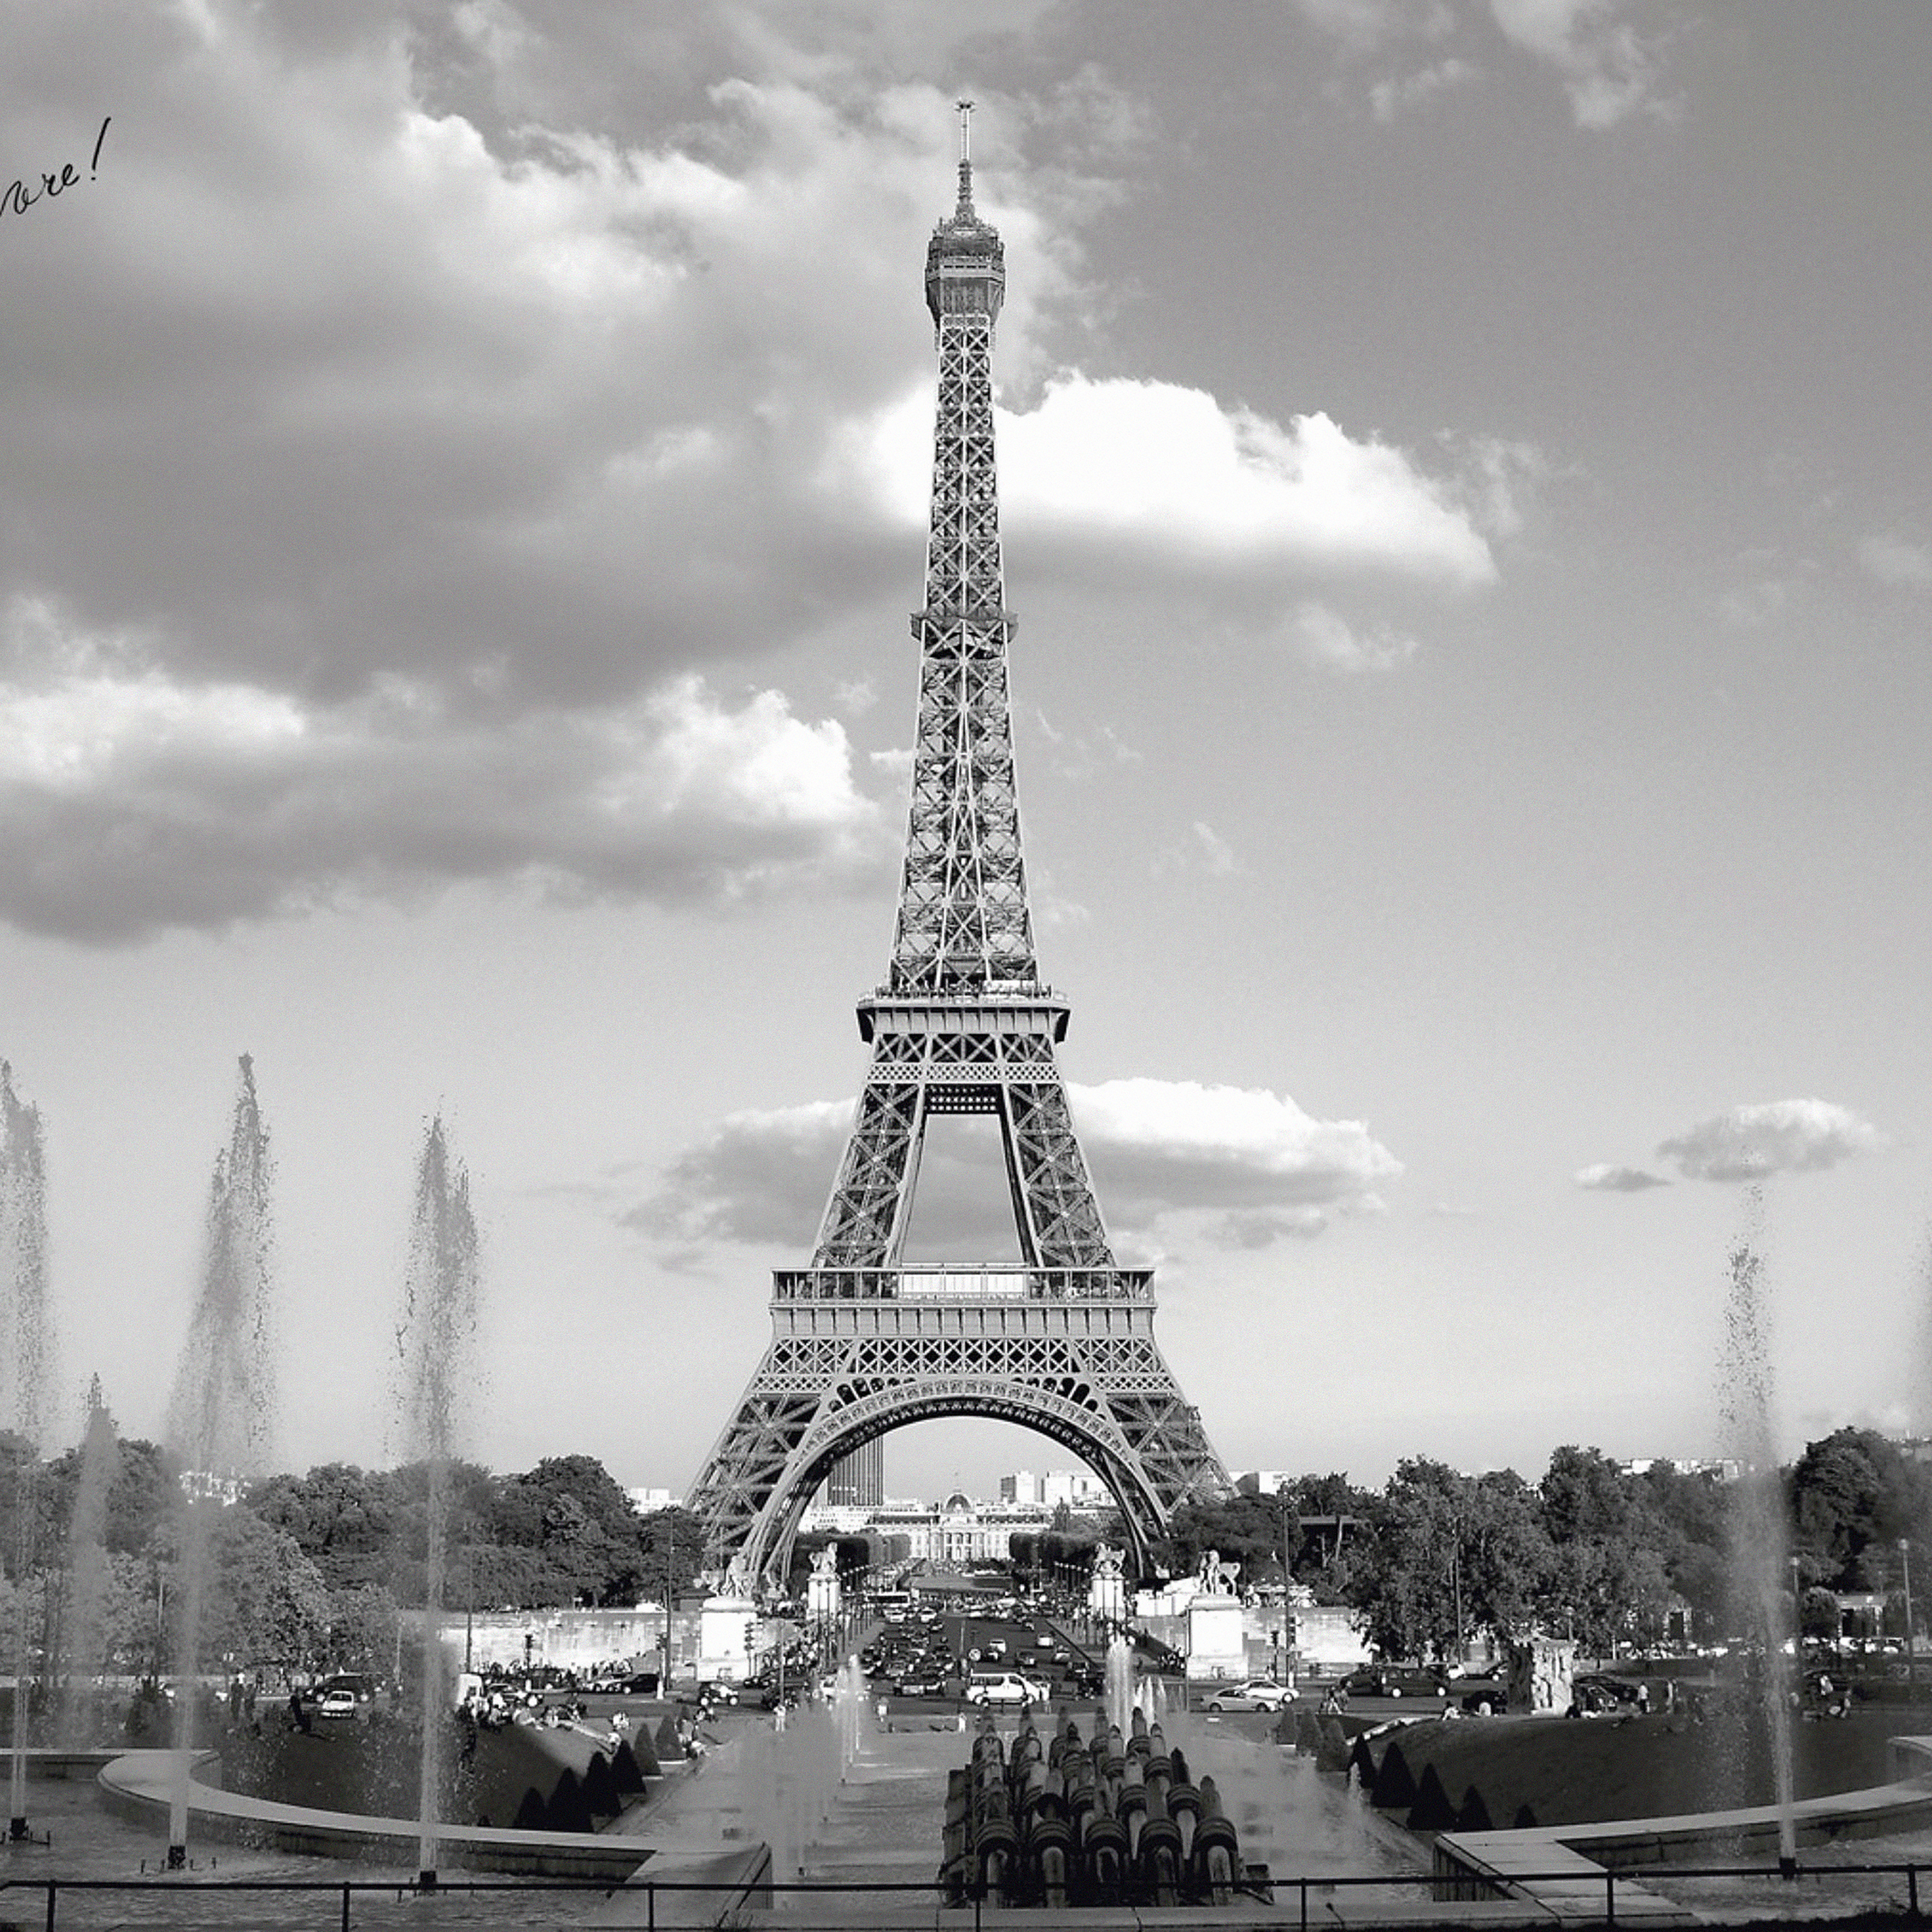 Iphone 6 Hd Car Wallpaper 1080p Mj38 Paris With Eiffel Tower France City Papers Co